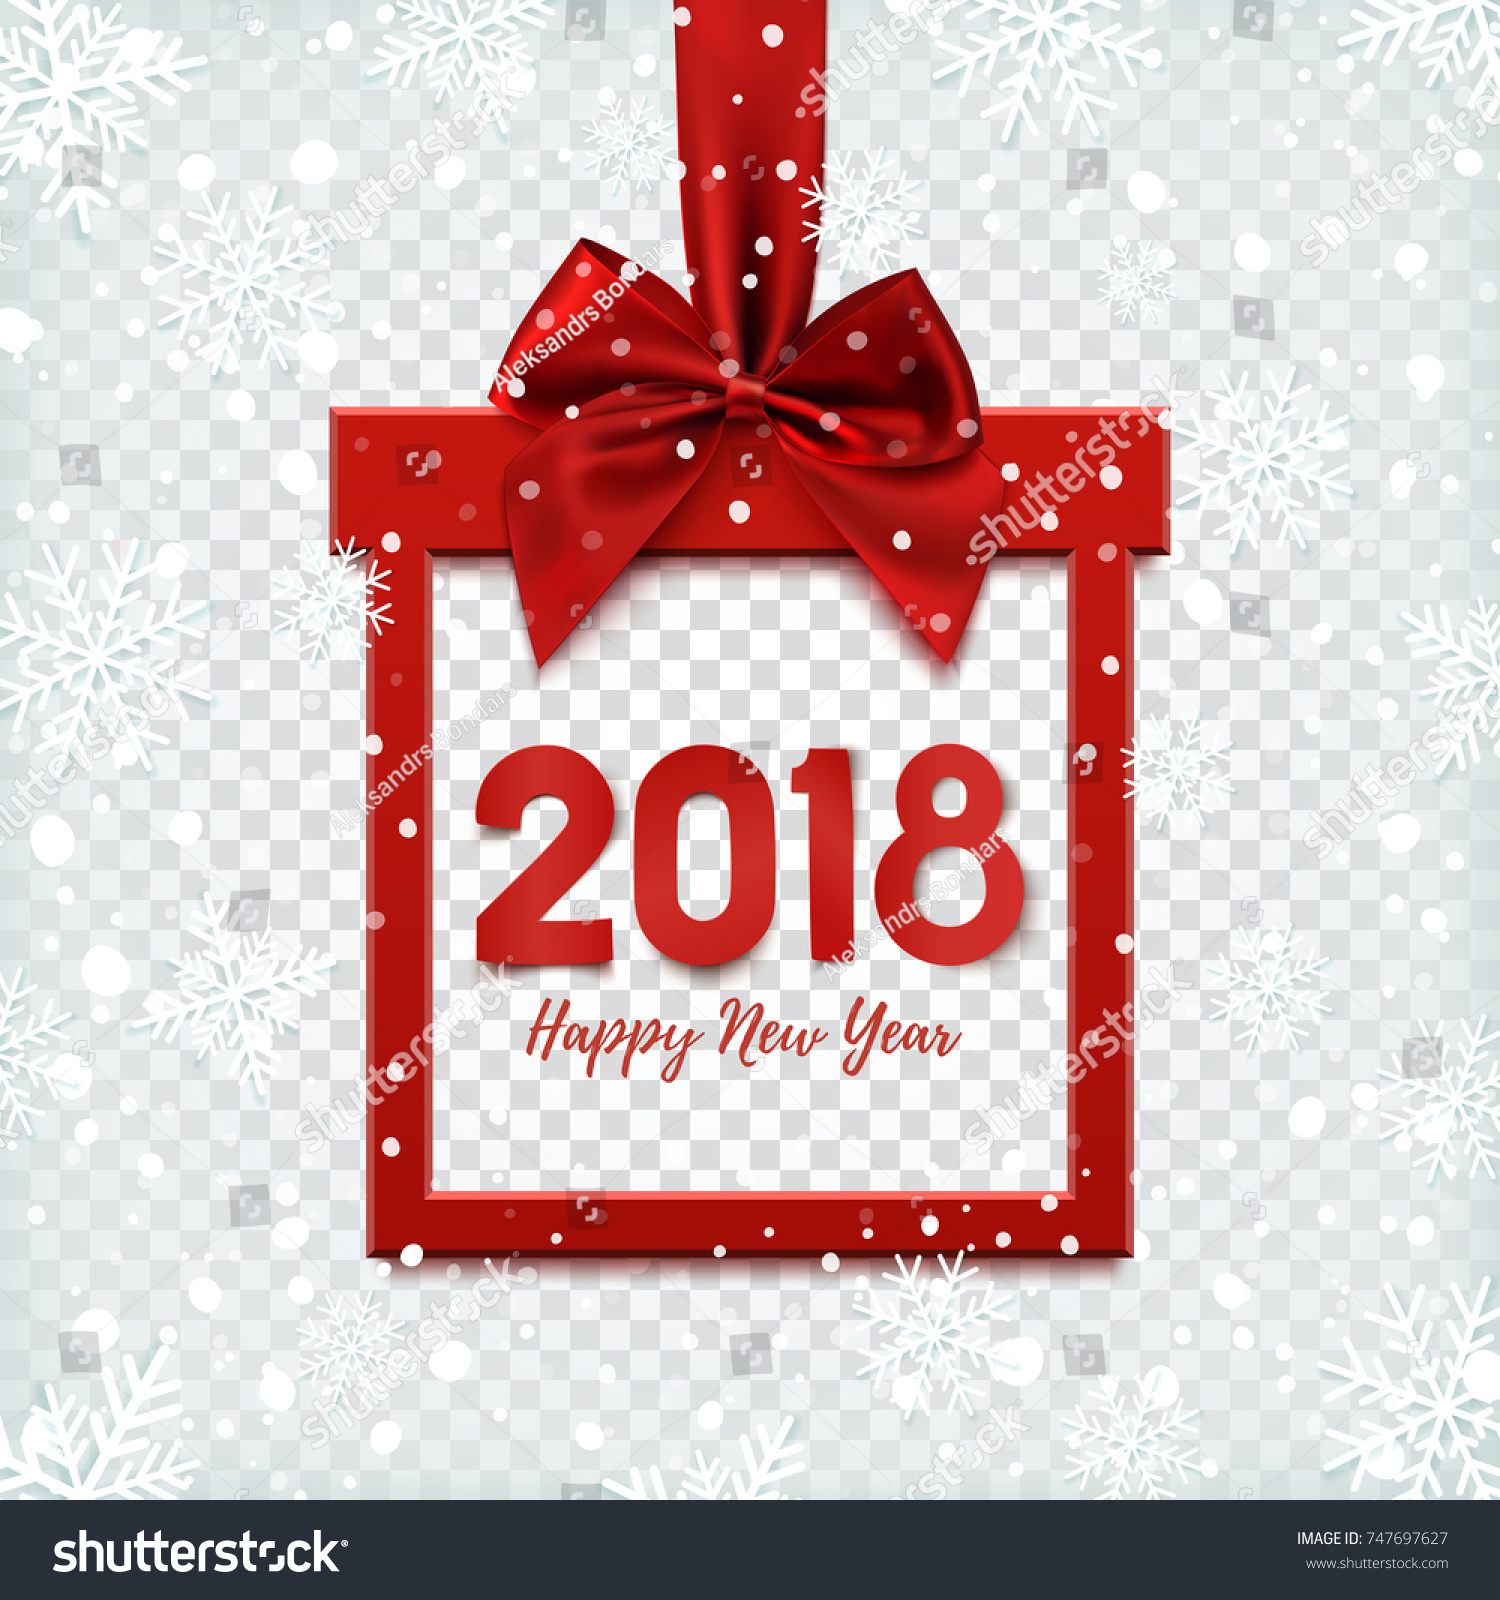 happy new year 2018 background square banner in form of christmas gift with red ribbon